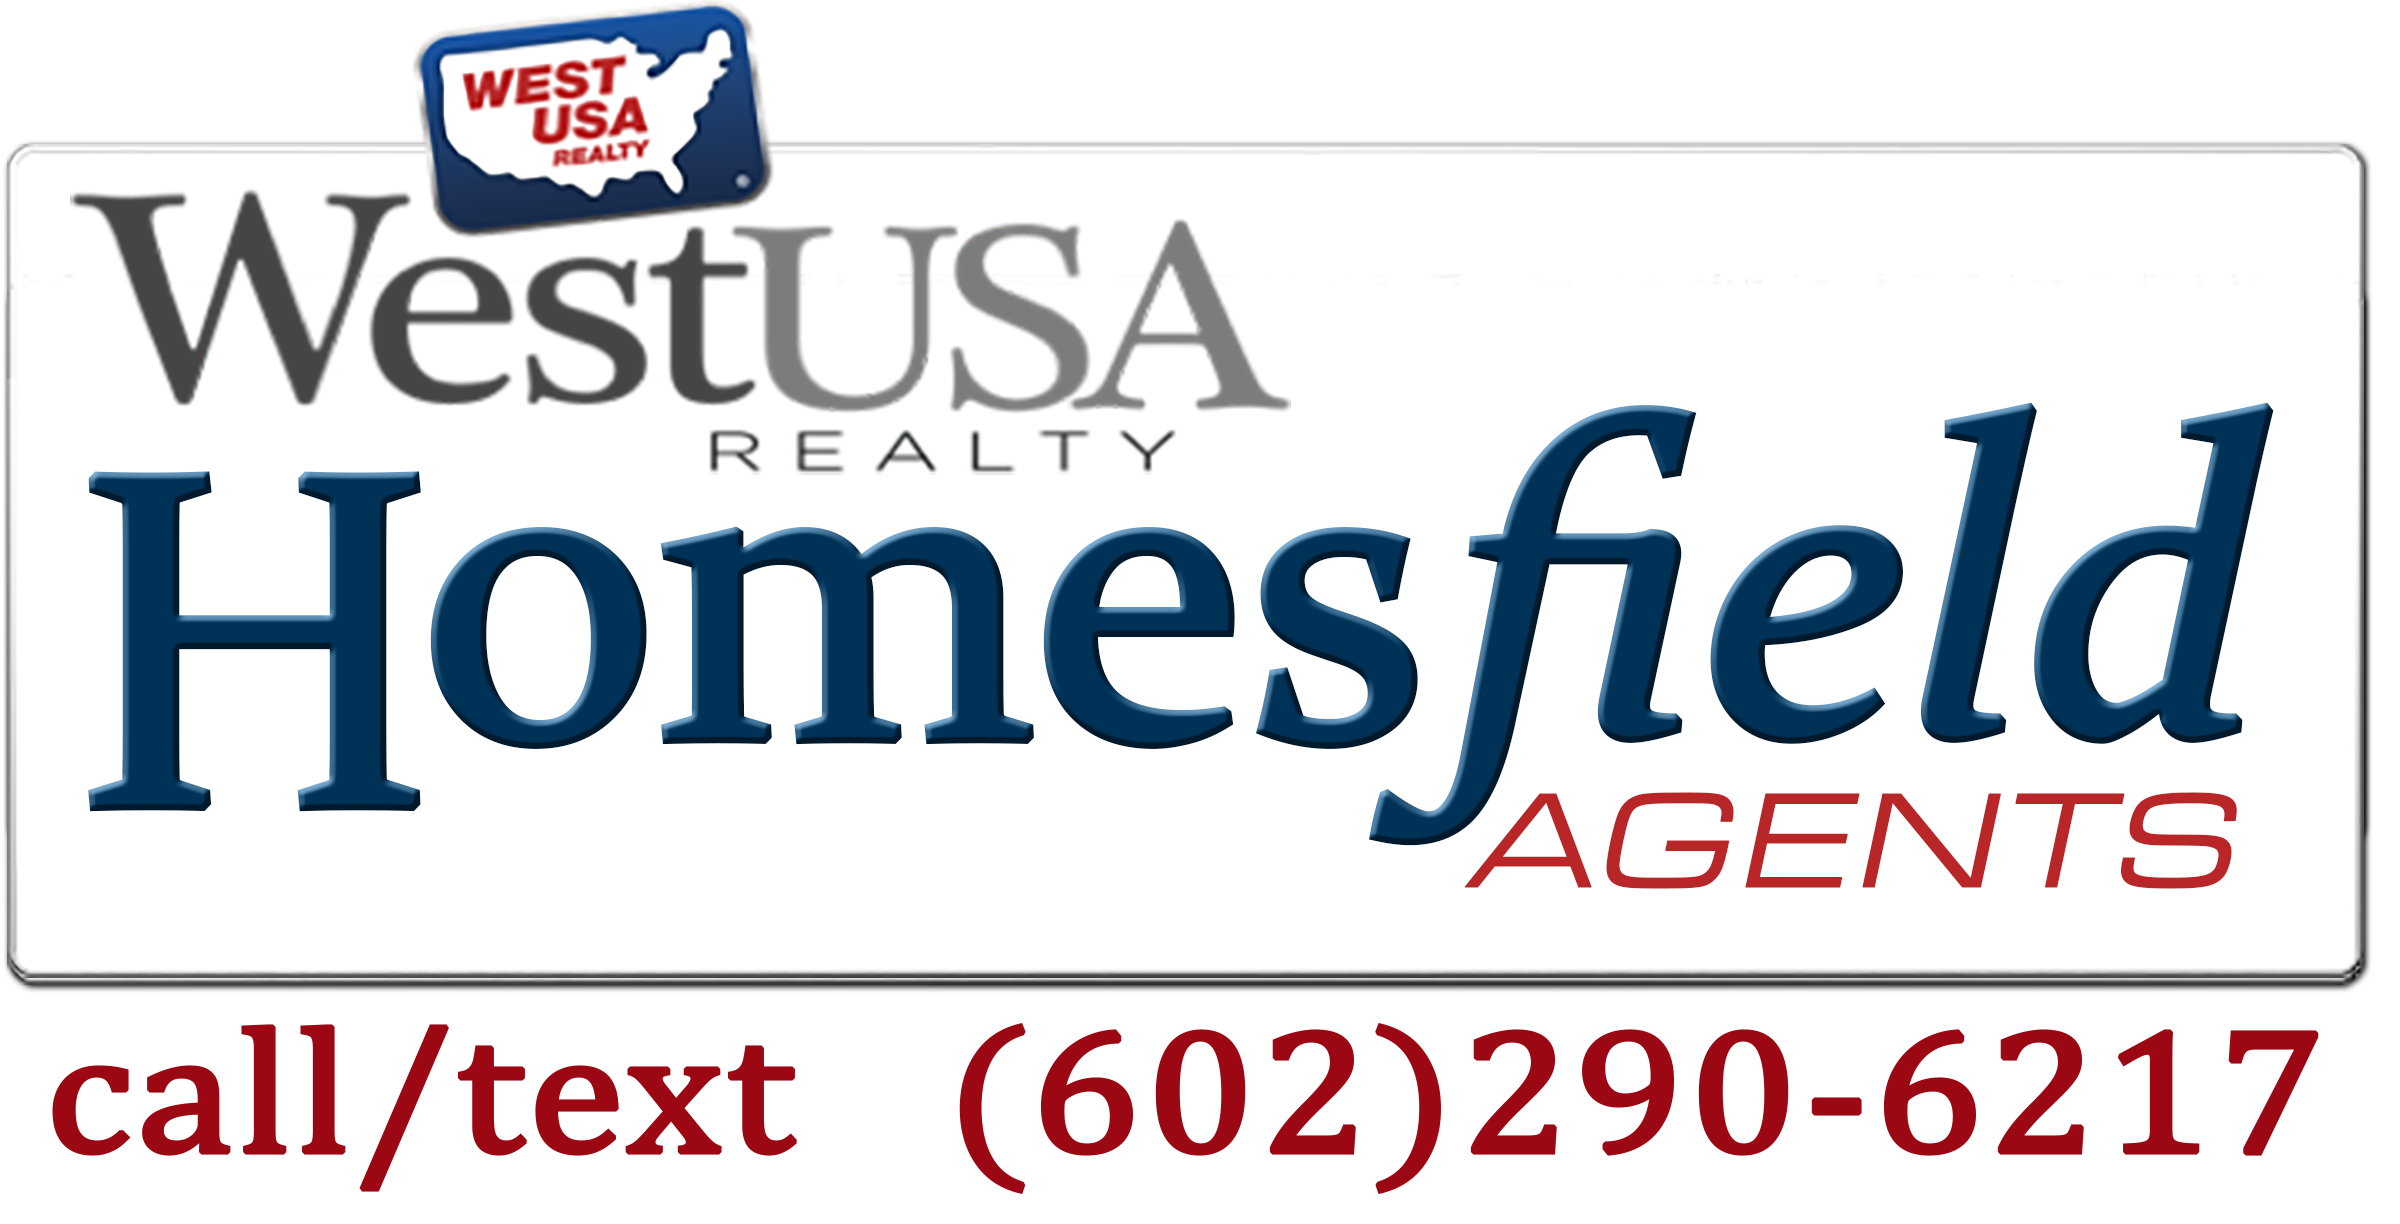 Homesfield Agents of West USA Realty in Moon Valley Phoenix